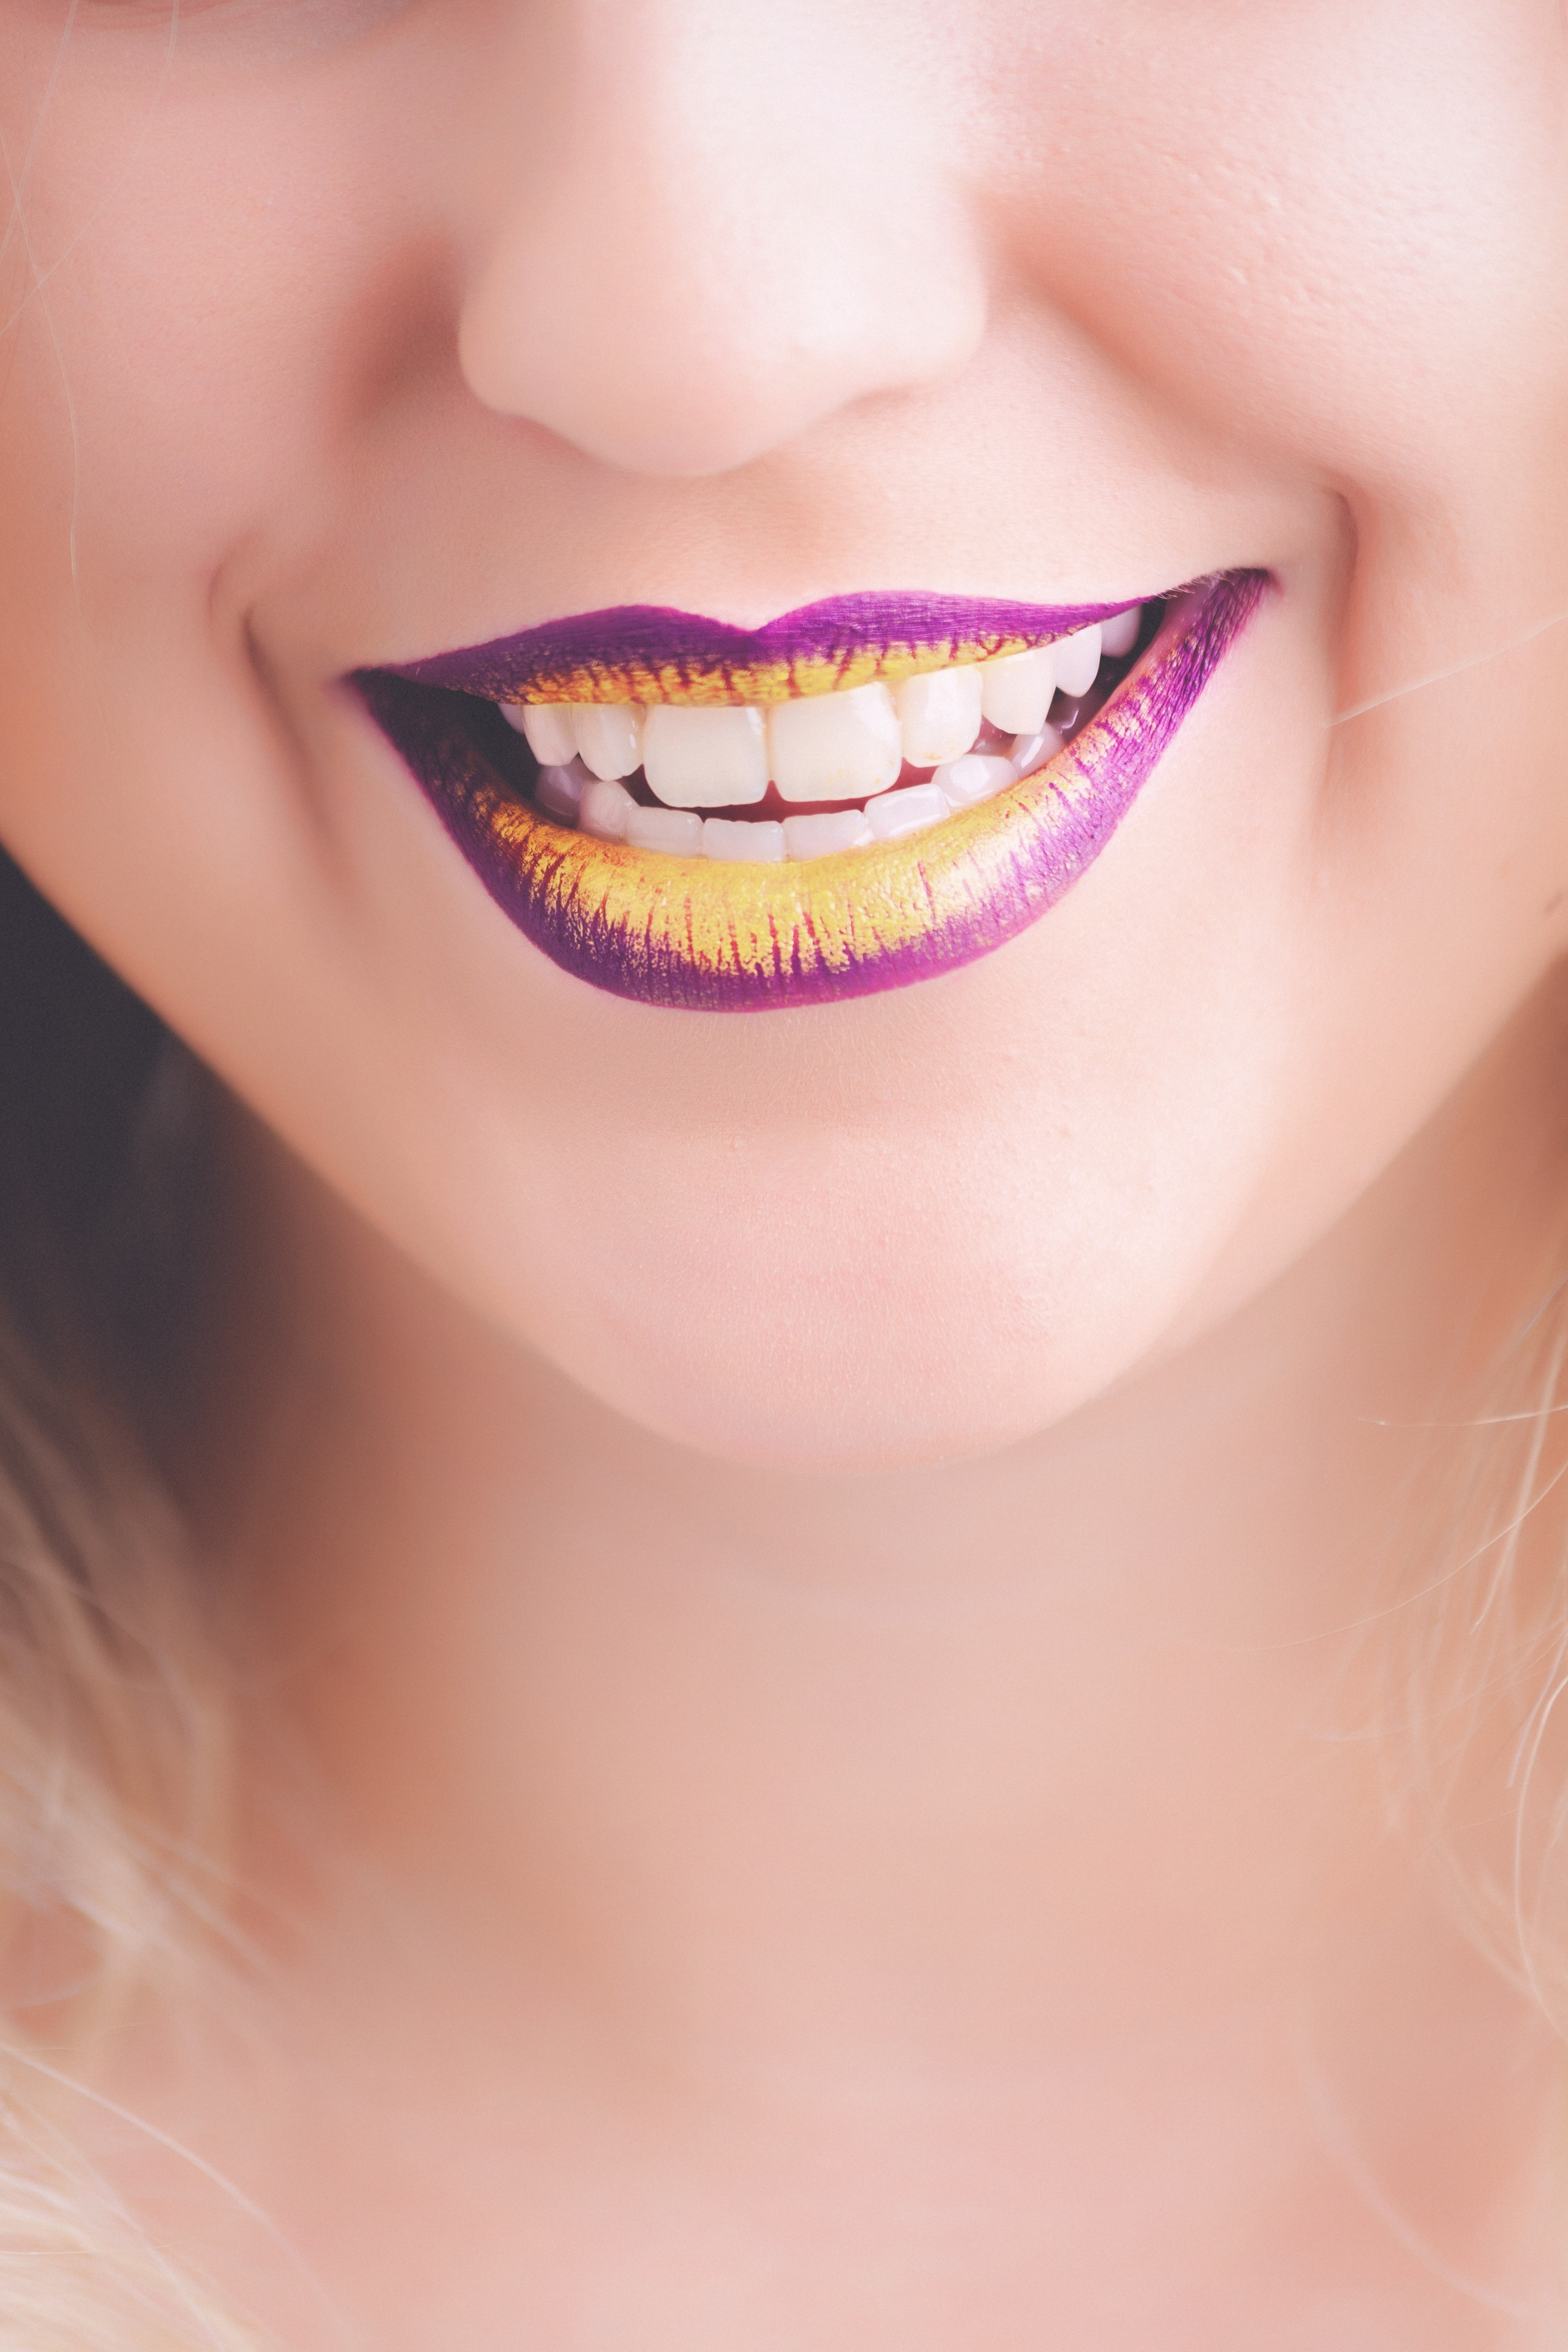 Woman Showing Her Purple and Yellow Lipsticks, Beautiful, Portrait, Woman, Violet, HQ Photo